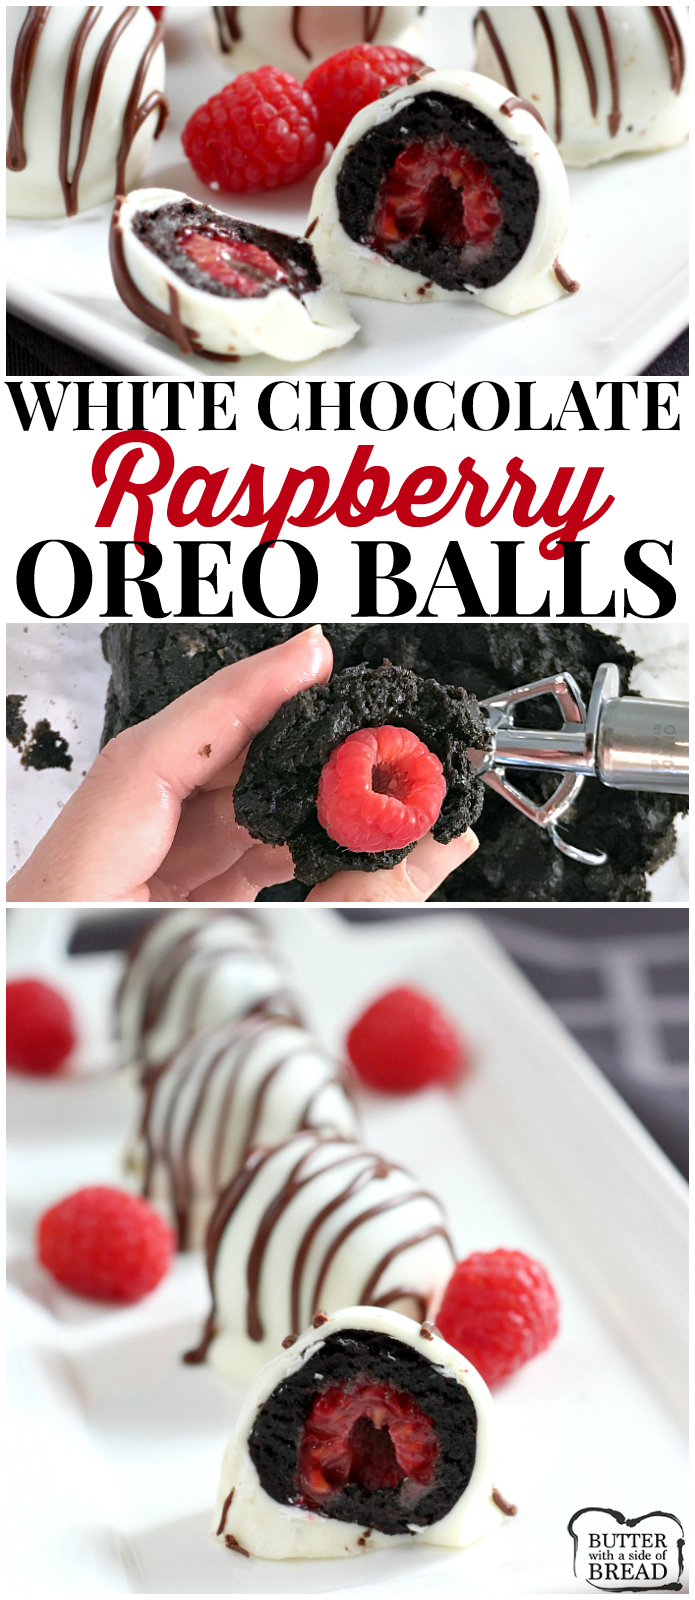 White Chocolate Raspberry Oreo Balls are a delicious no-bake treat made with Oreo cookies, cream cheese and a raspberry in the middle! The Oreo Balls are dipped in a white chocolate candy coating and coated with a chocolate drizzle.